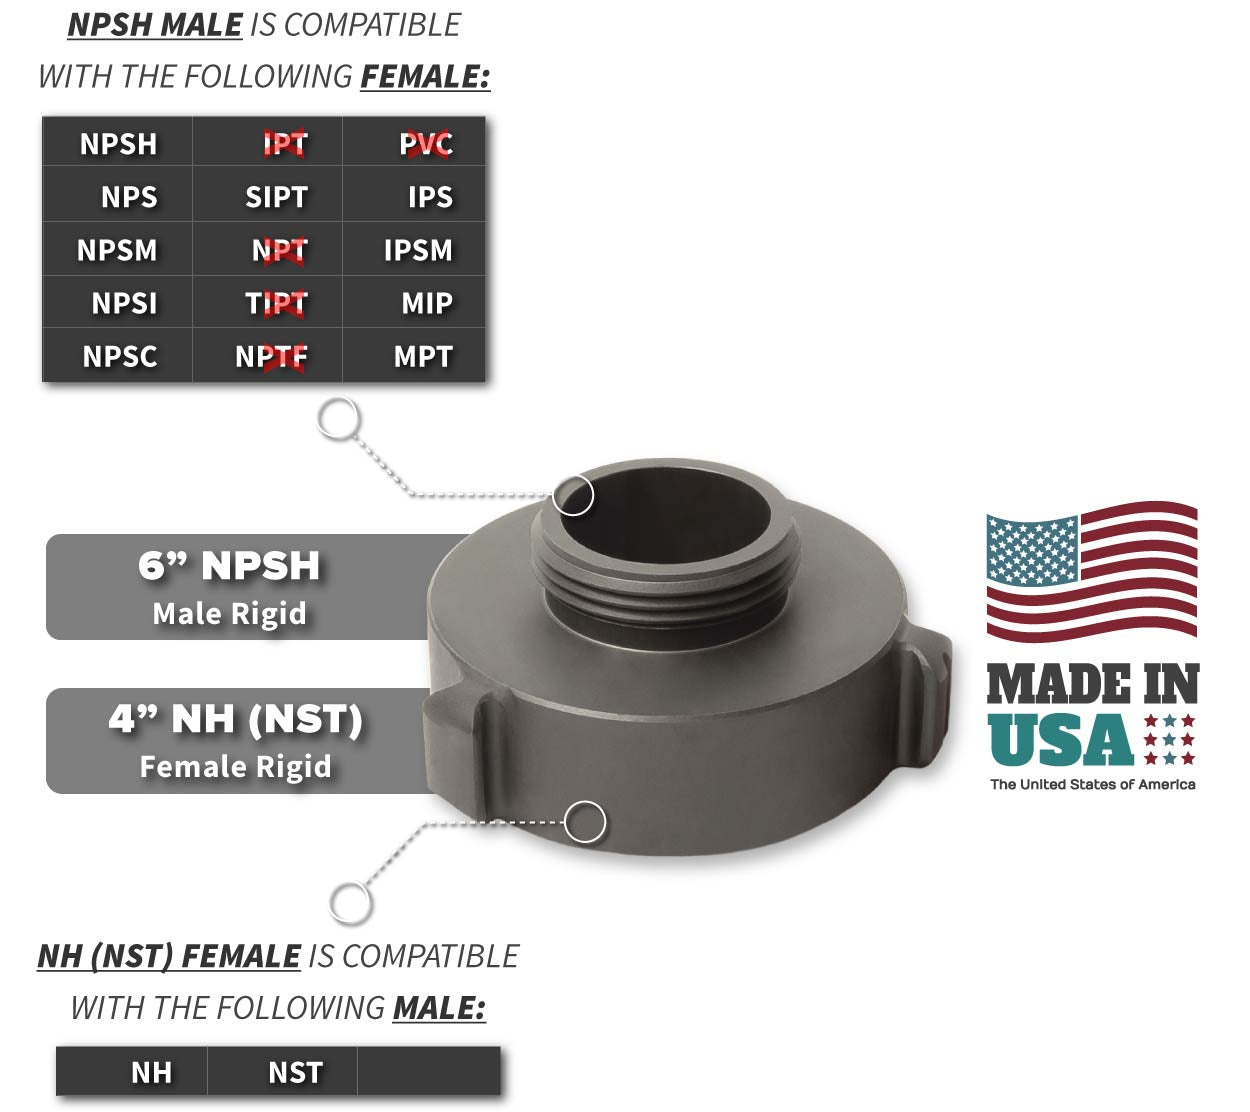 4 Inch NH-NST Female x 6 Inch NPSH Male Compatibility Thread Chart